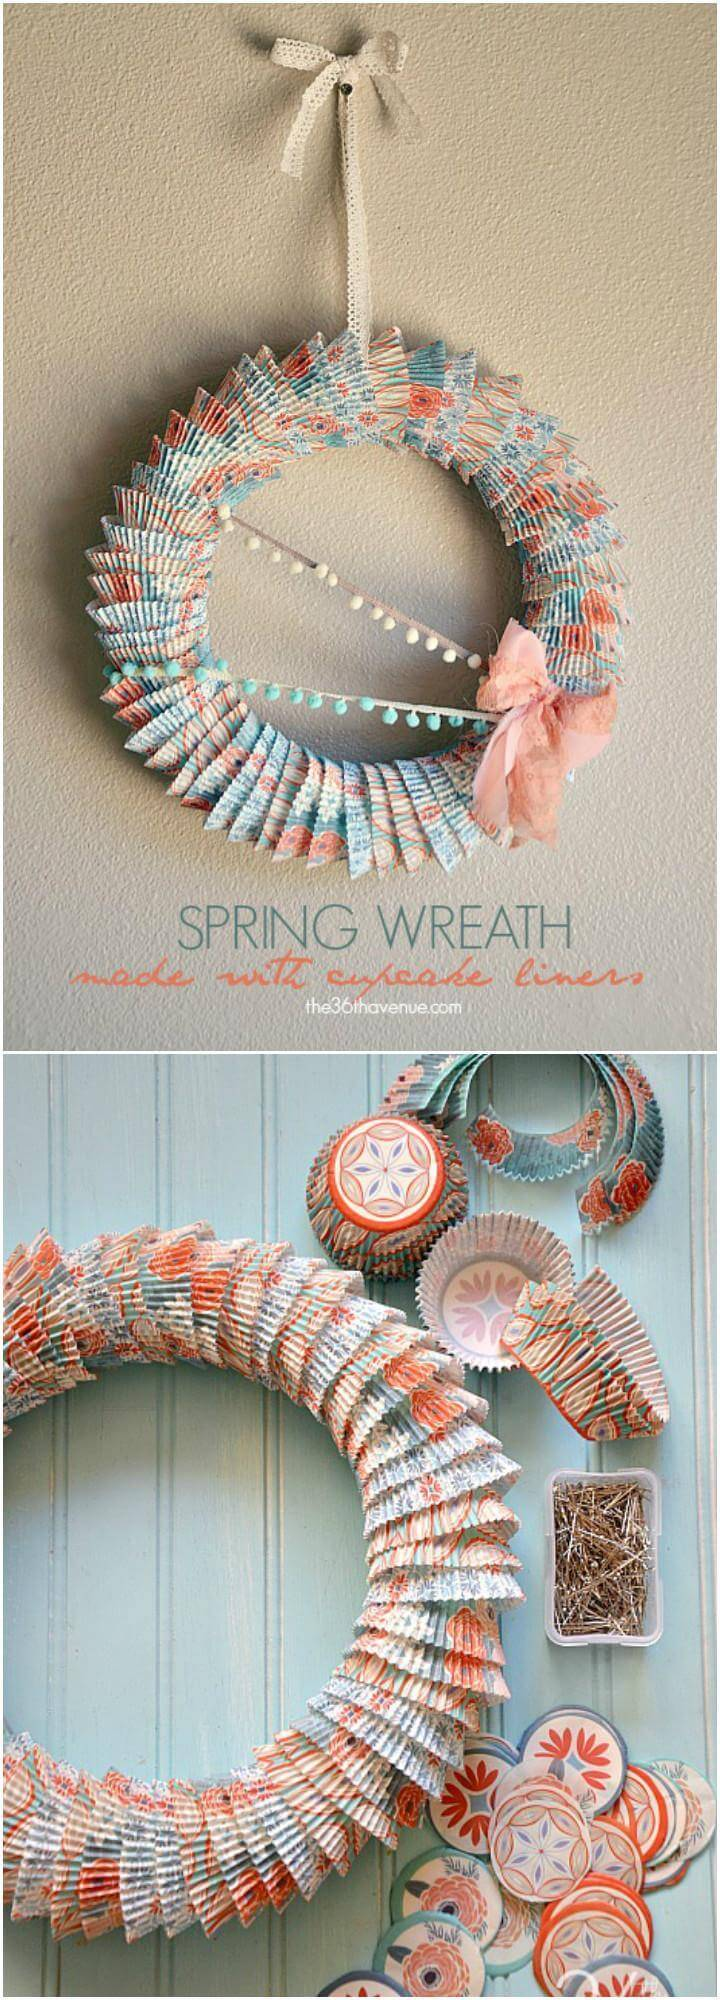 DIY Superb Wreath Made of Cupcake Liners